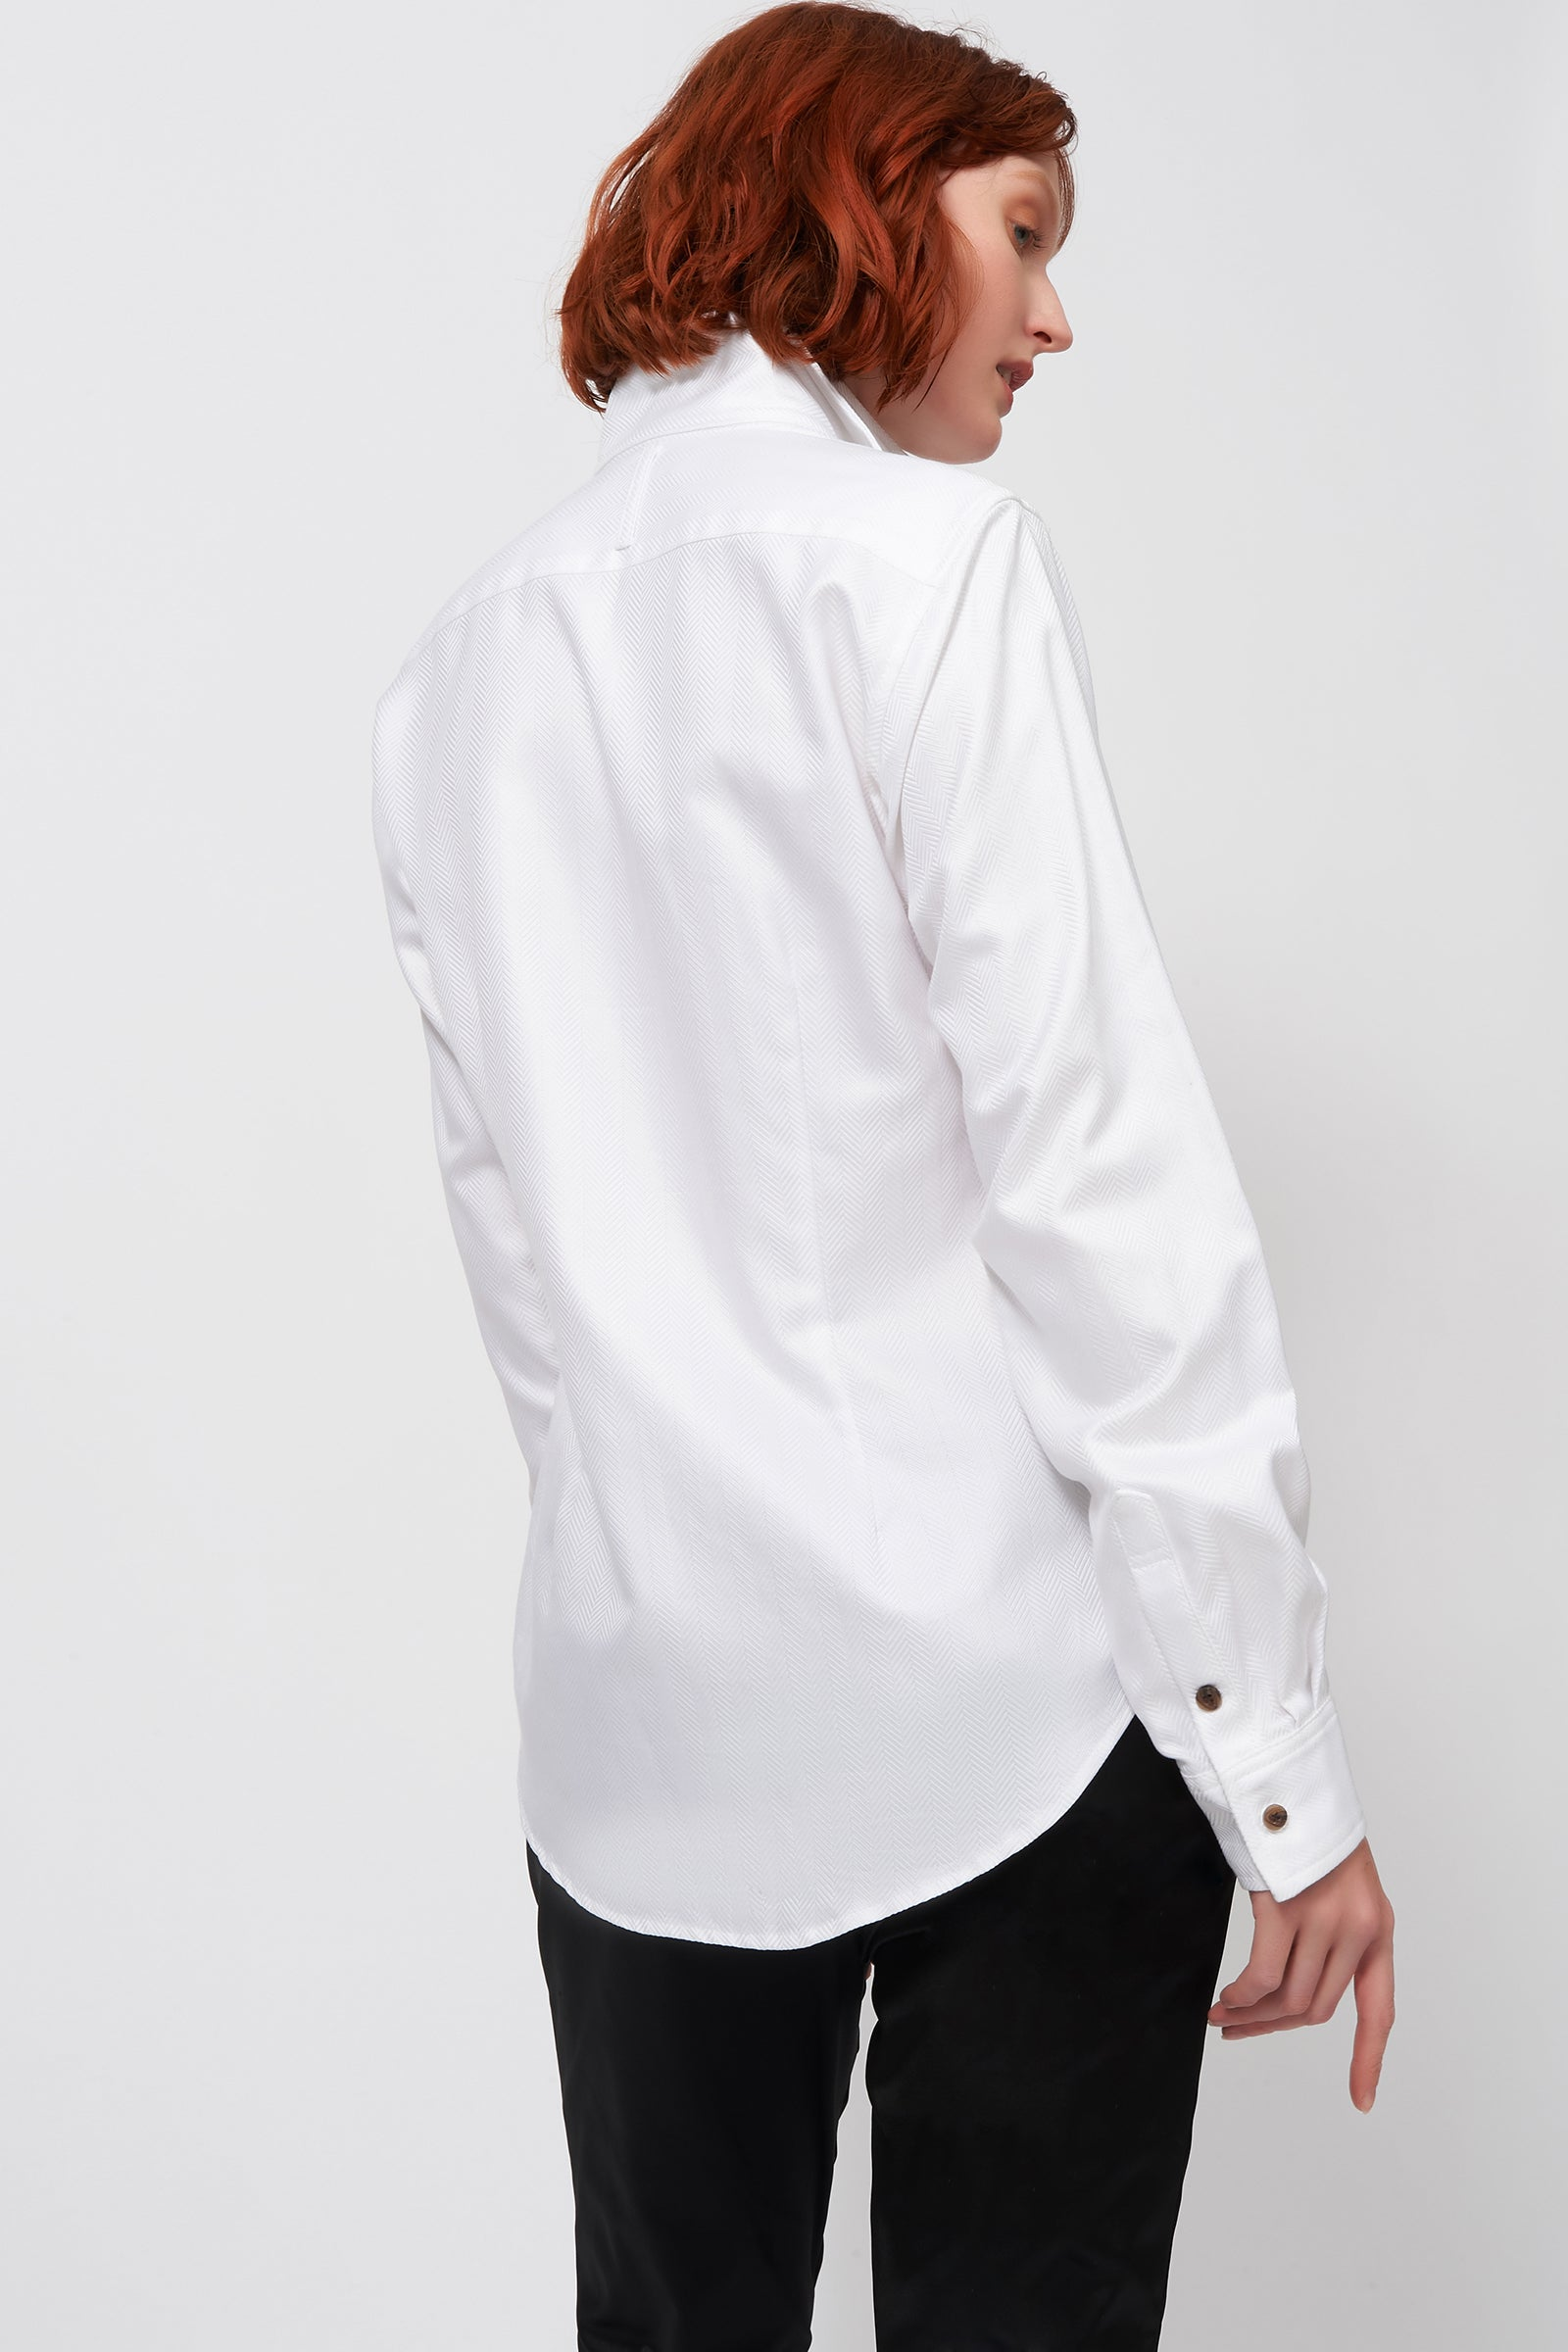 Kal Rieman Double Collar Shirt in White Herringbone on Model Back View